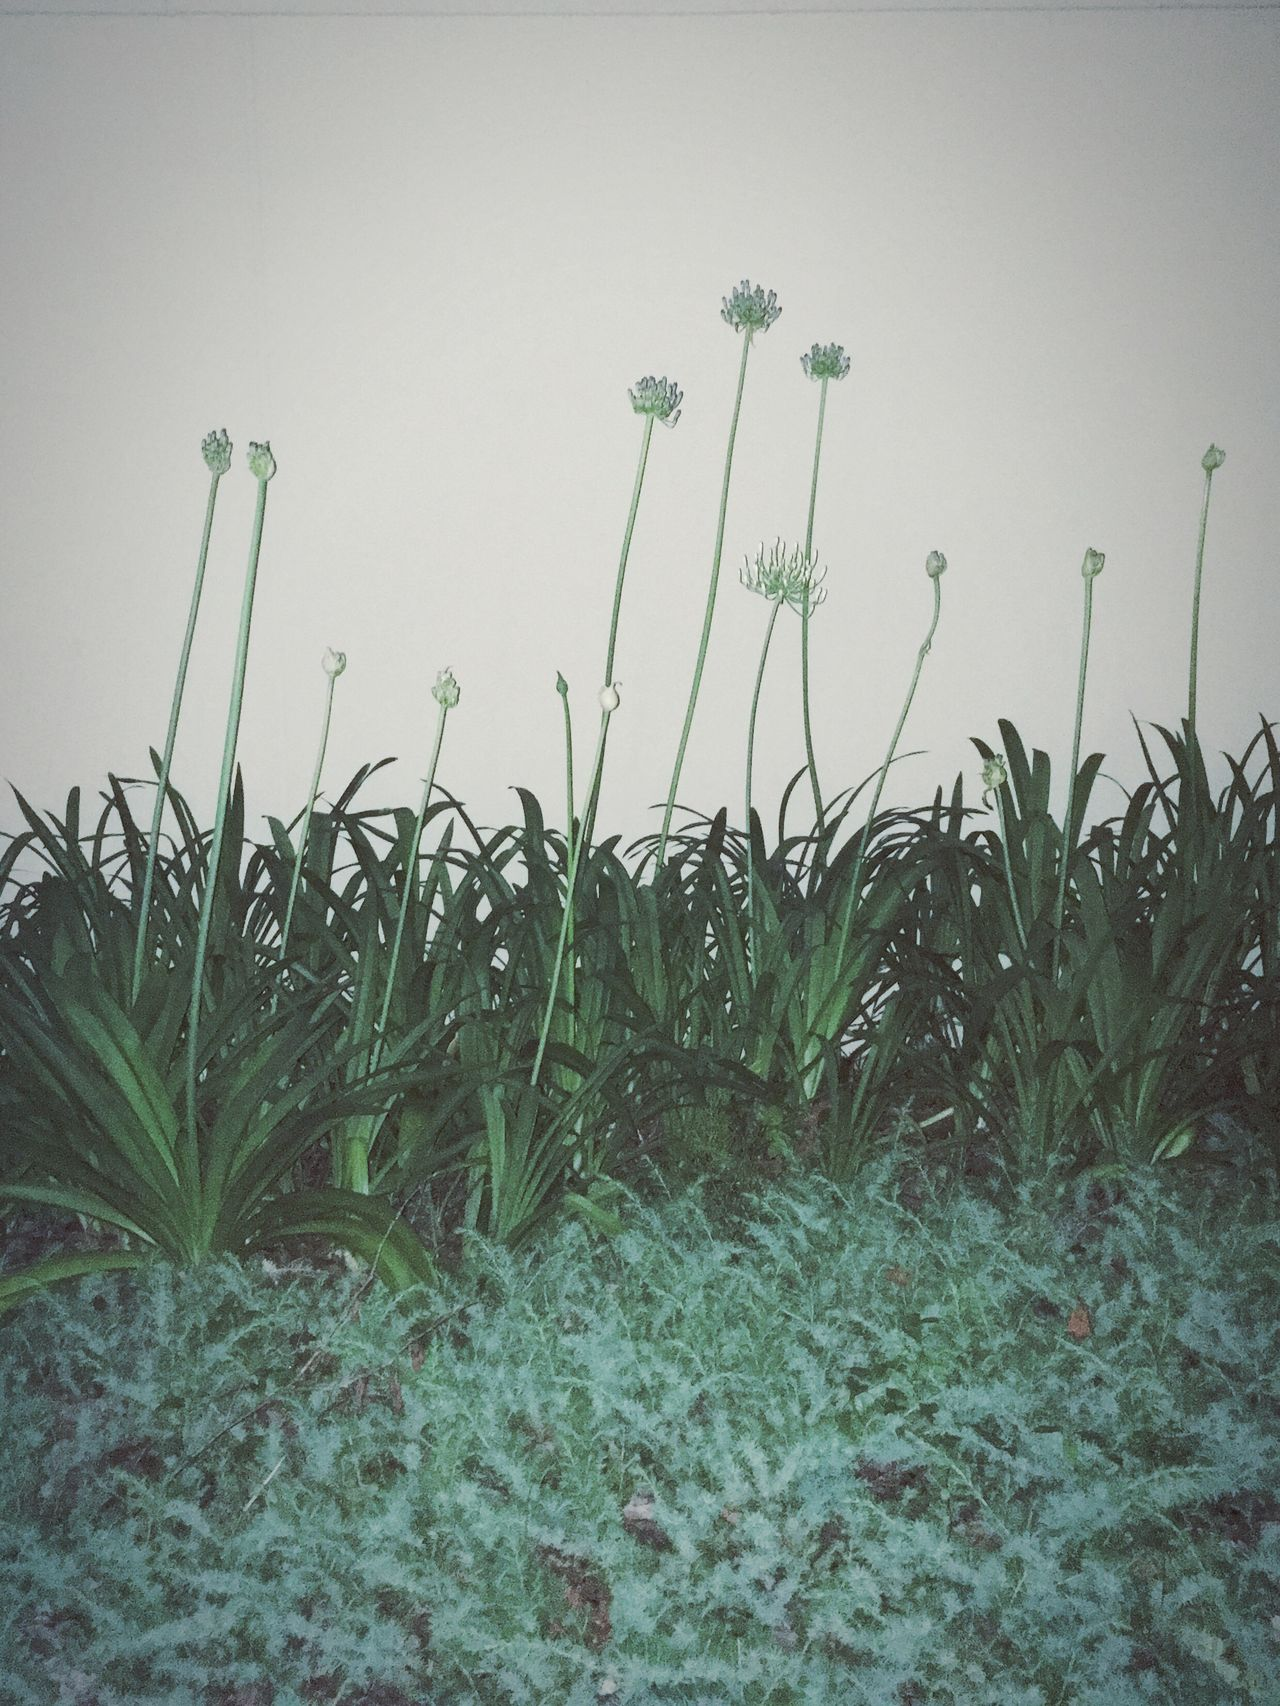 Growth Grass Plant Nature Green Color Outdoors No People Day Beauty In Nature Landscape Snapshot IPhoneography Light And Shadow Getting Inspired Quiet Moments Night Nightphotography Cityscape